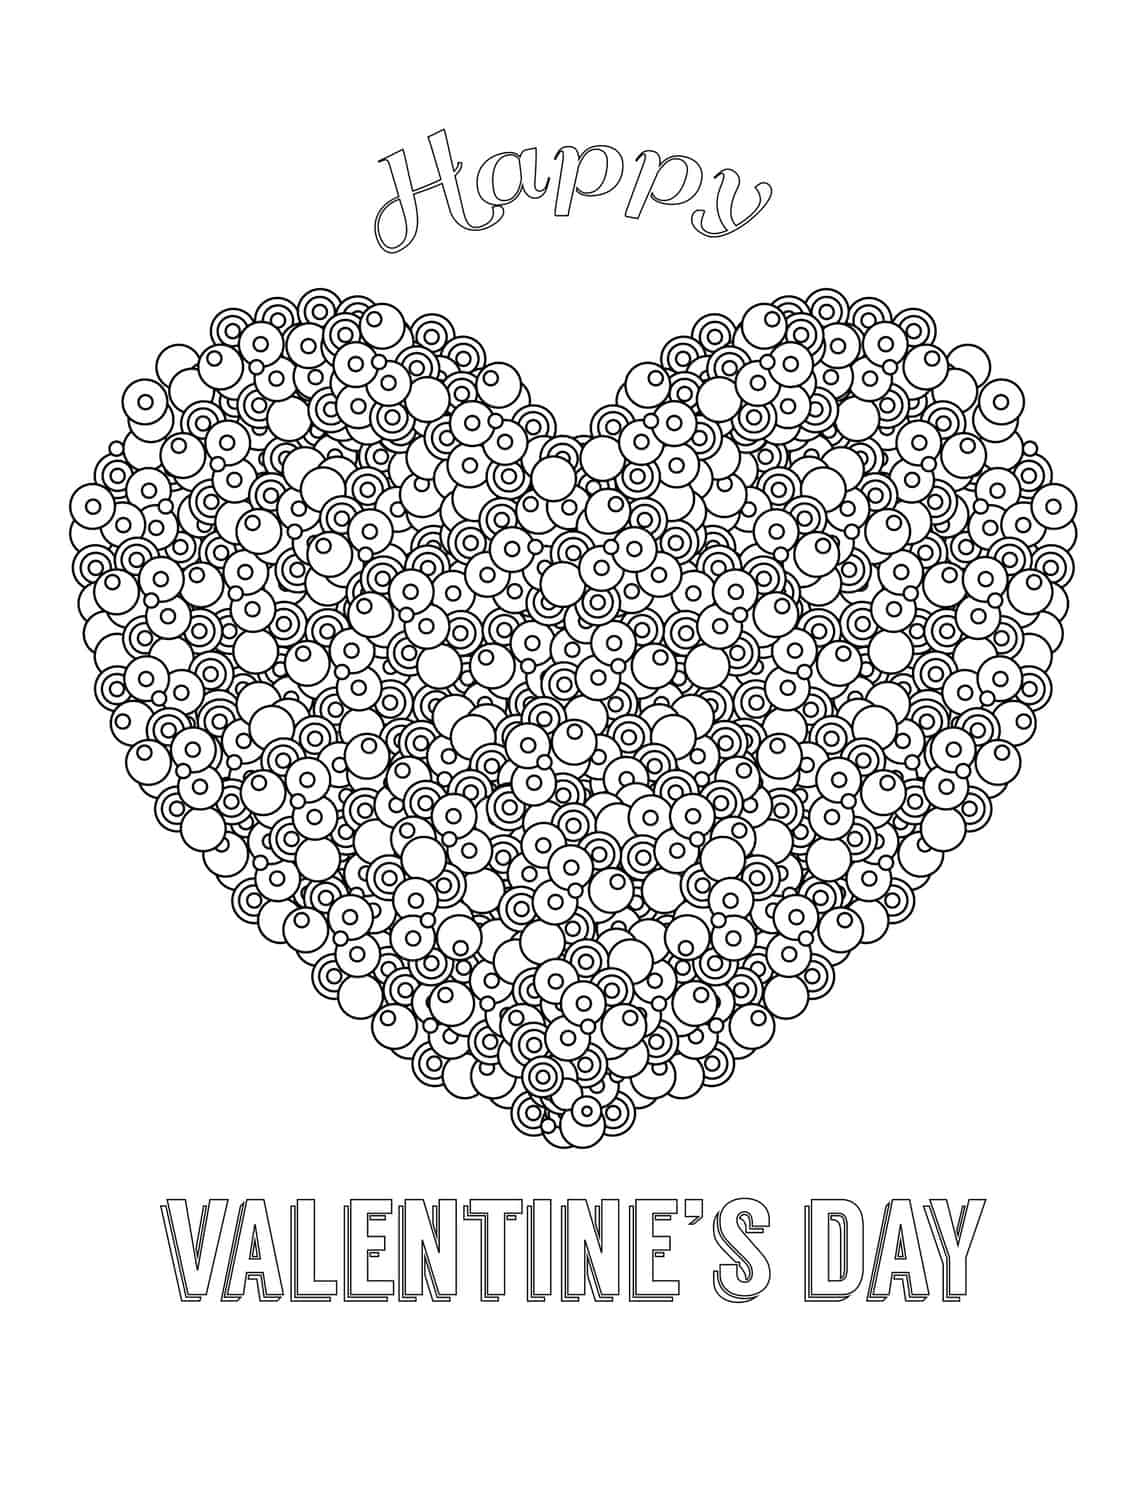 Coloring pages for adults valentines day - Coloring Pages For Adults Valentines Day 6